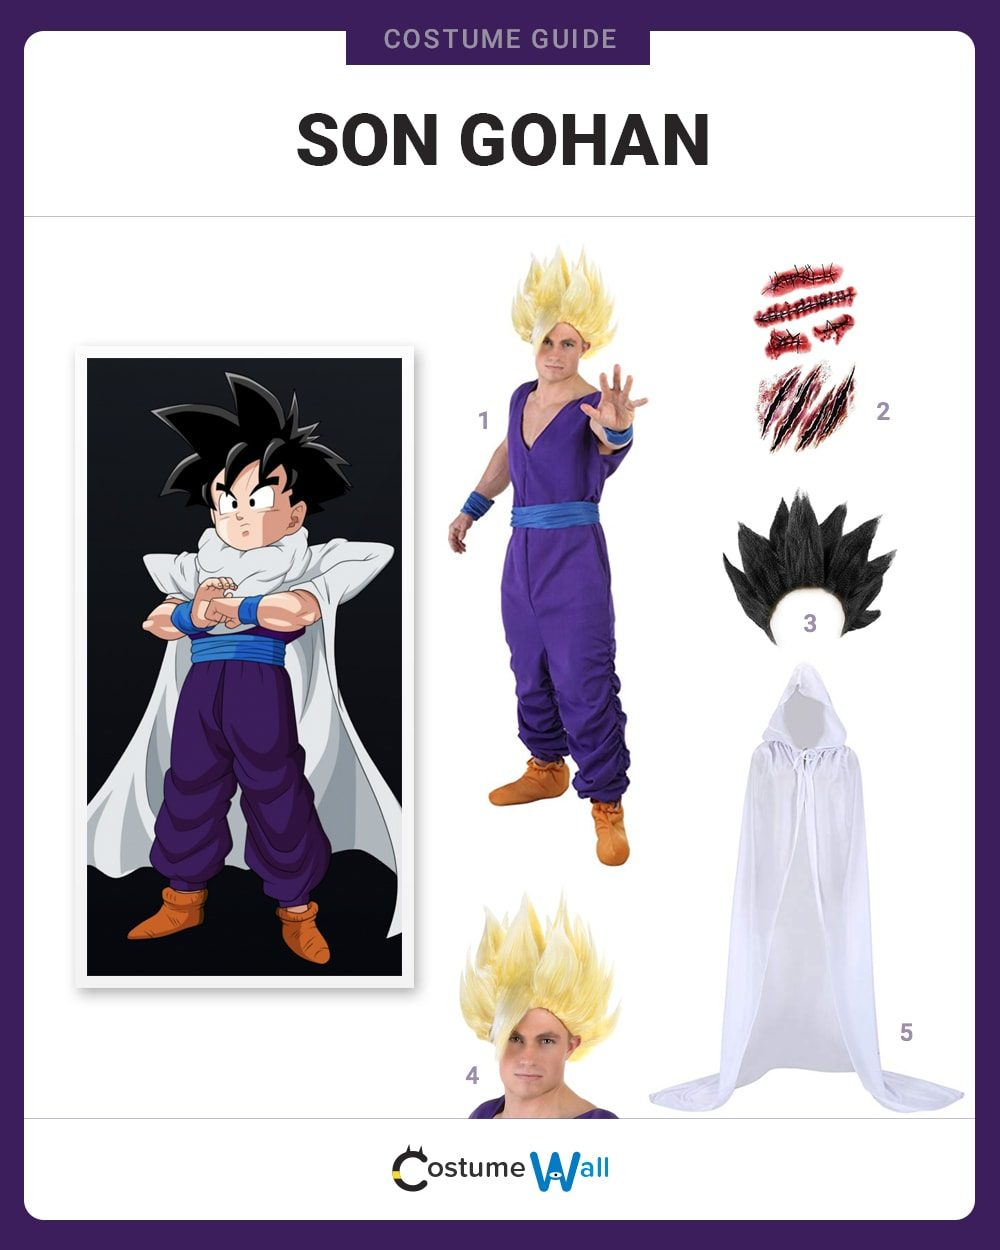 Son Gohan Costume Guide